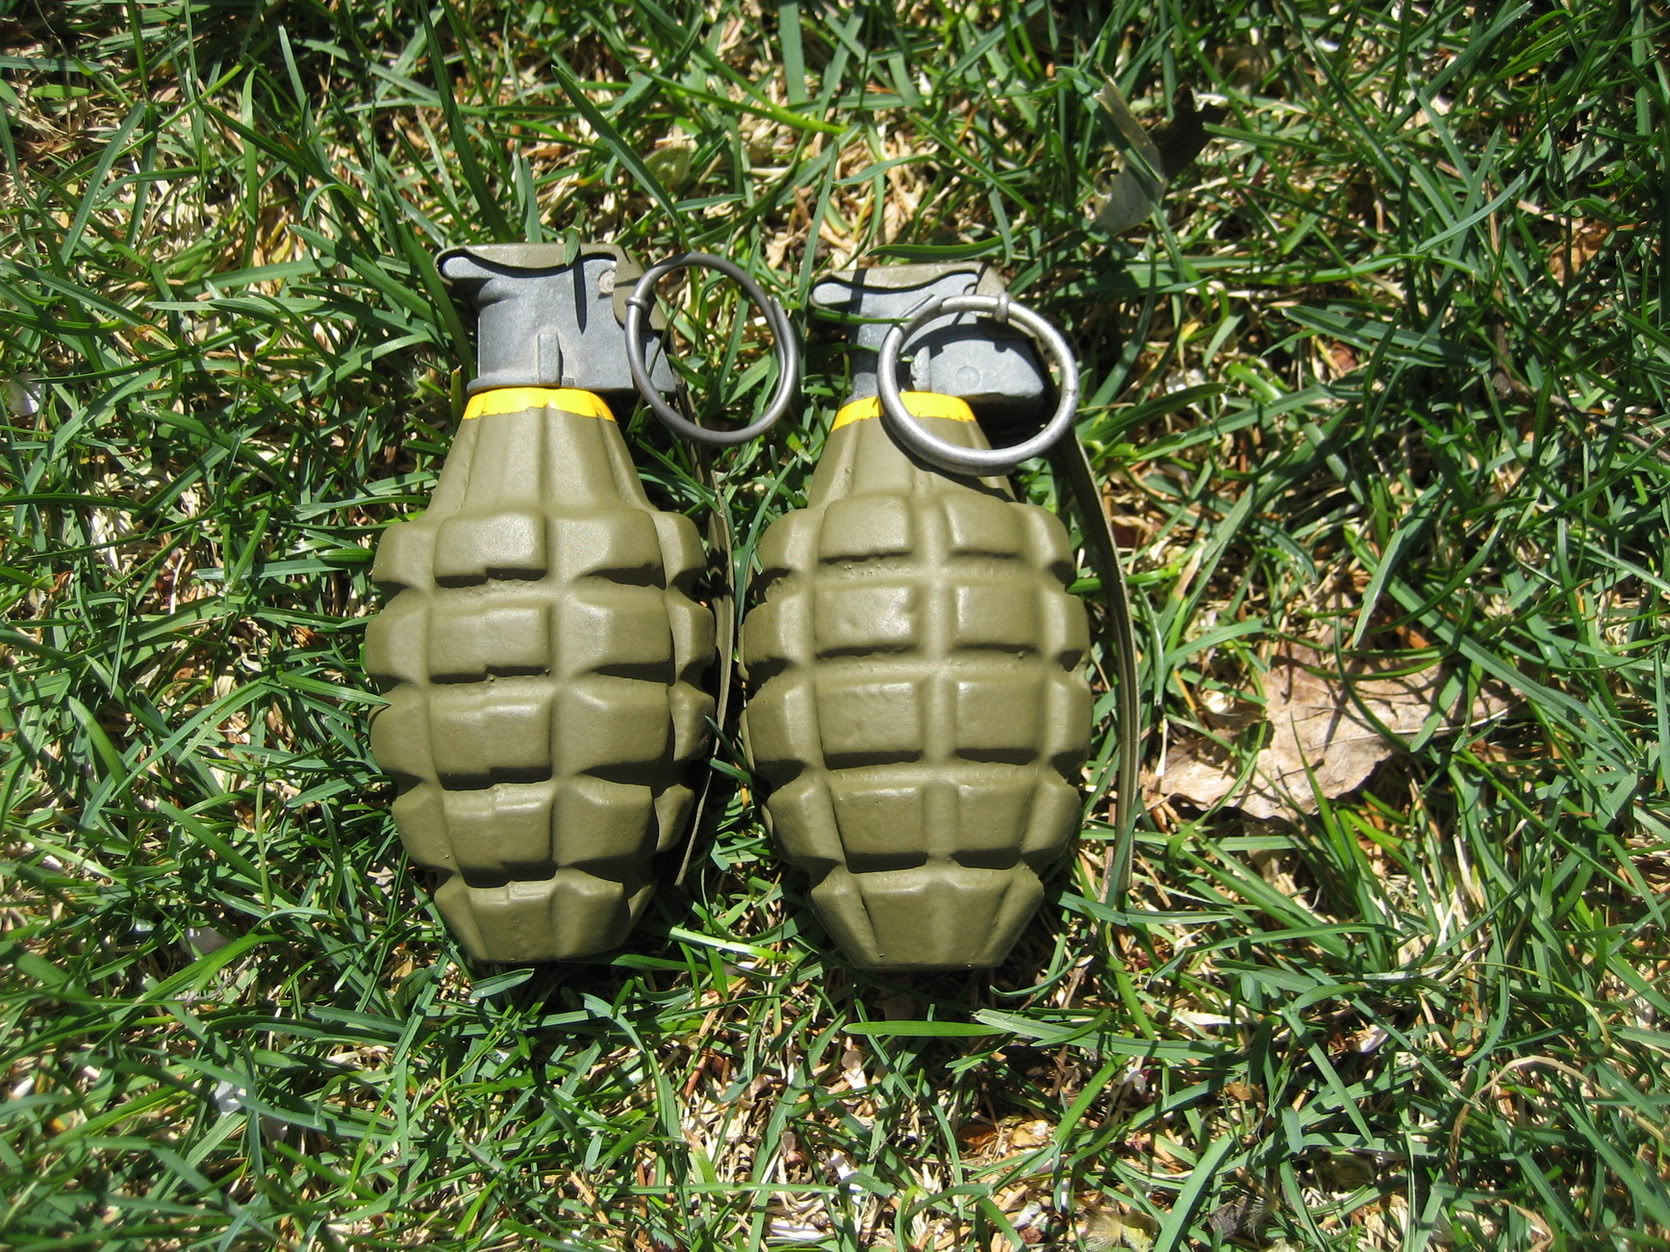 Deep Fire MK2 Gas Grenade - Buy airsoft Accessories online from ...